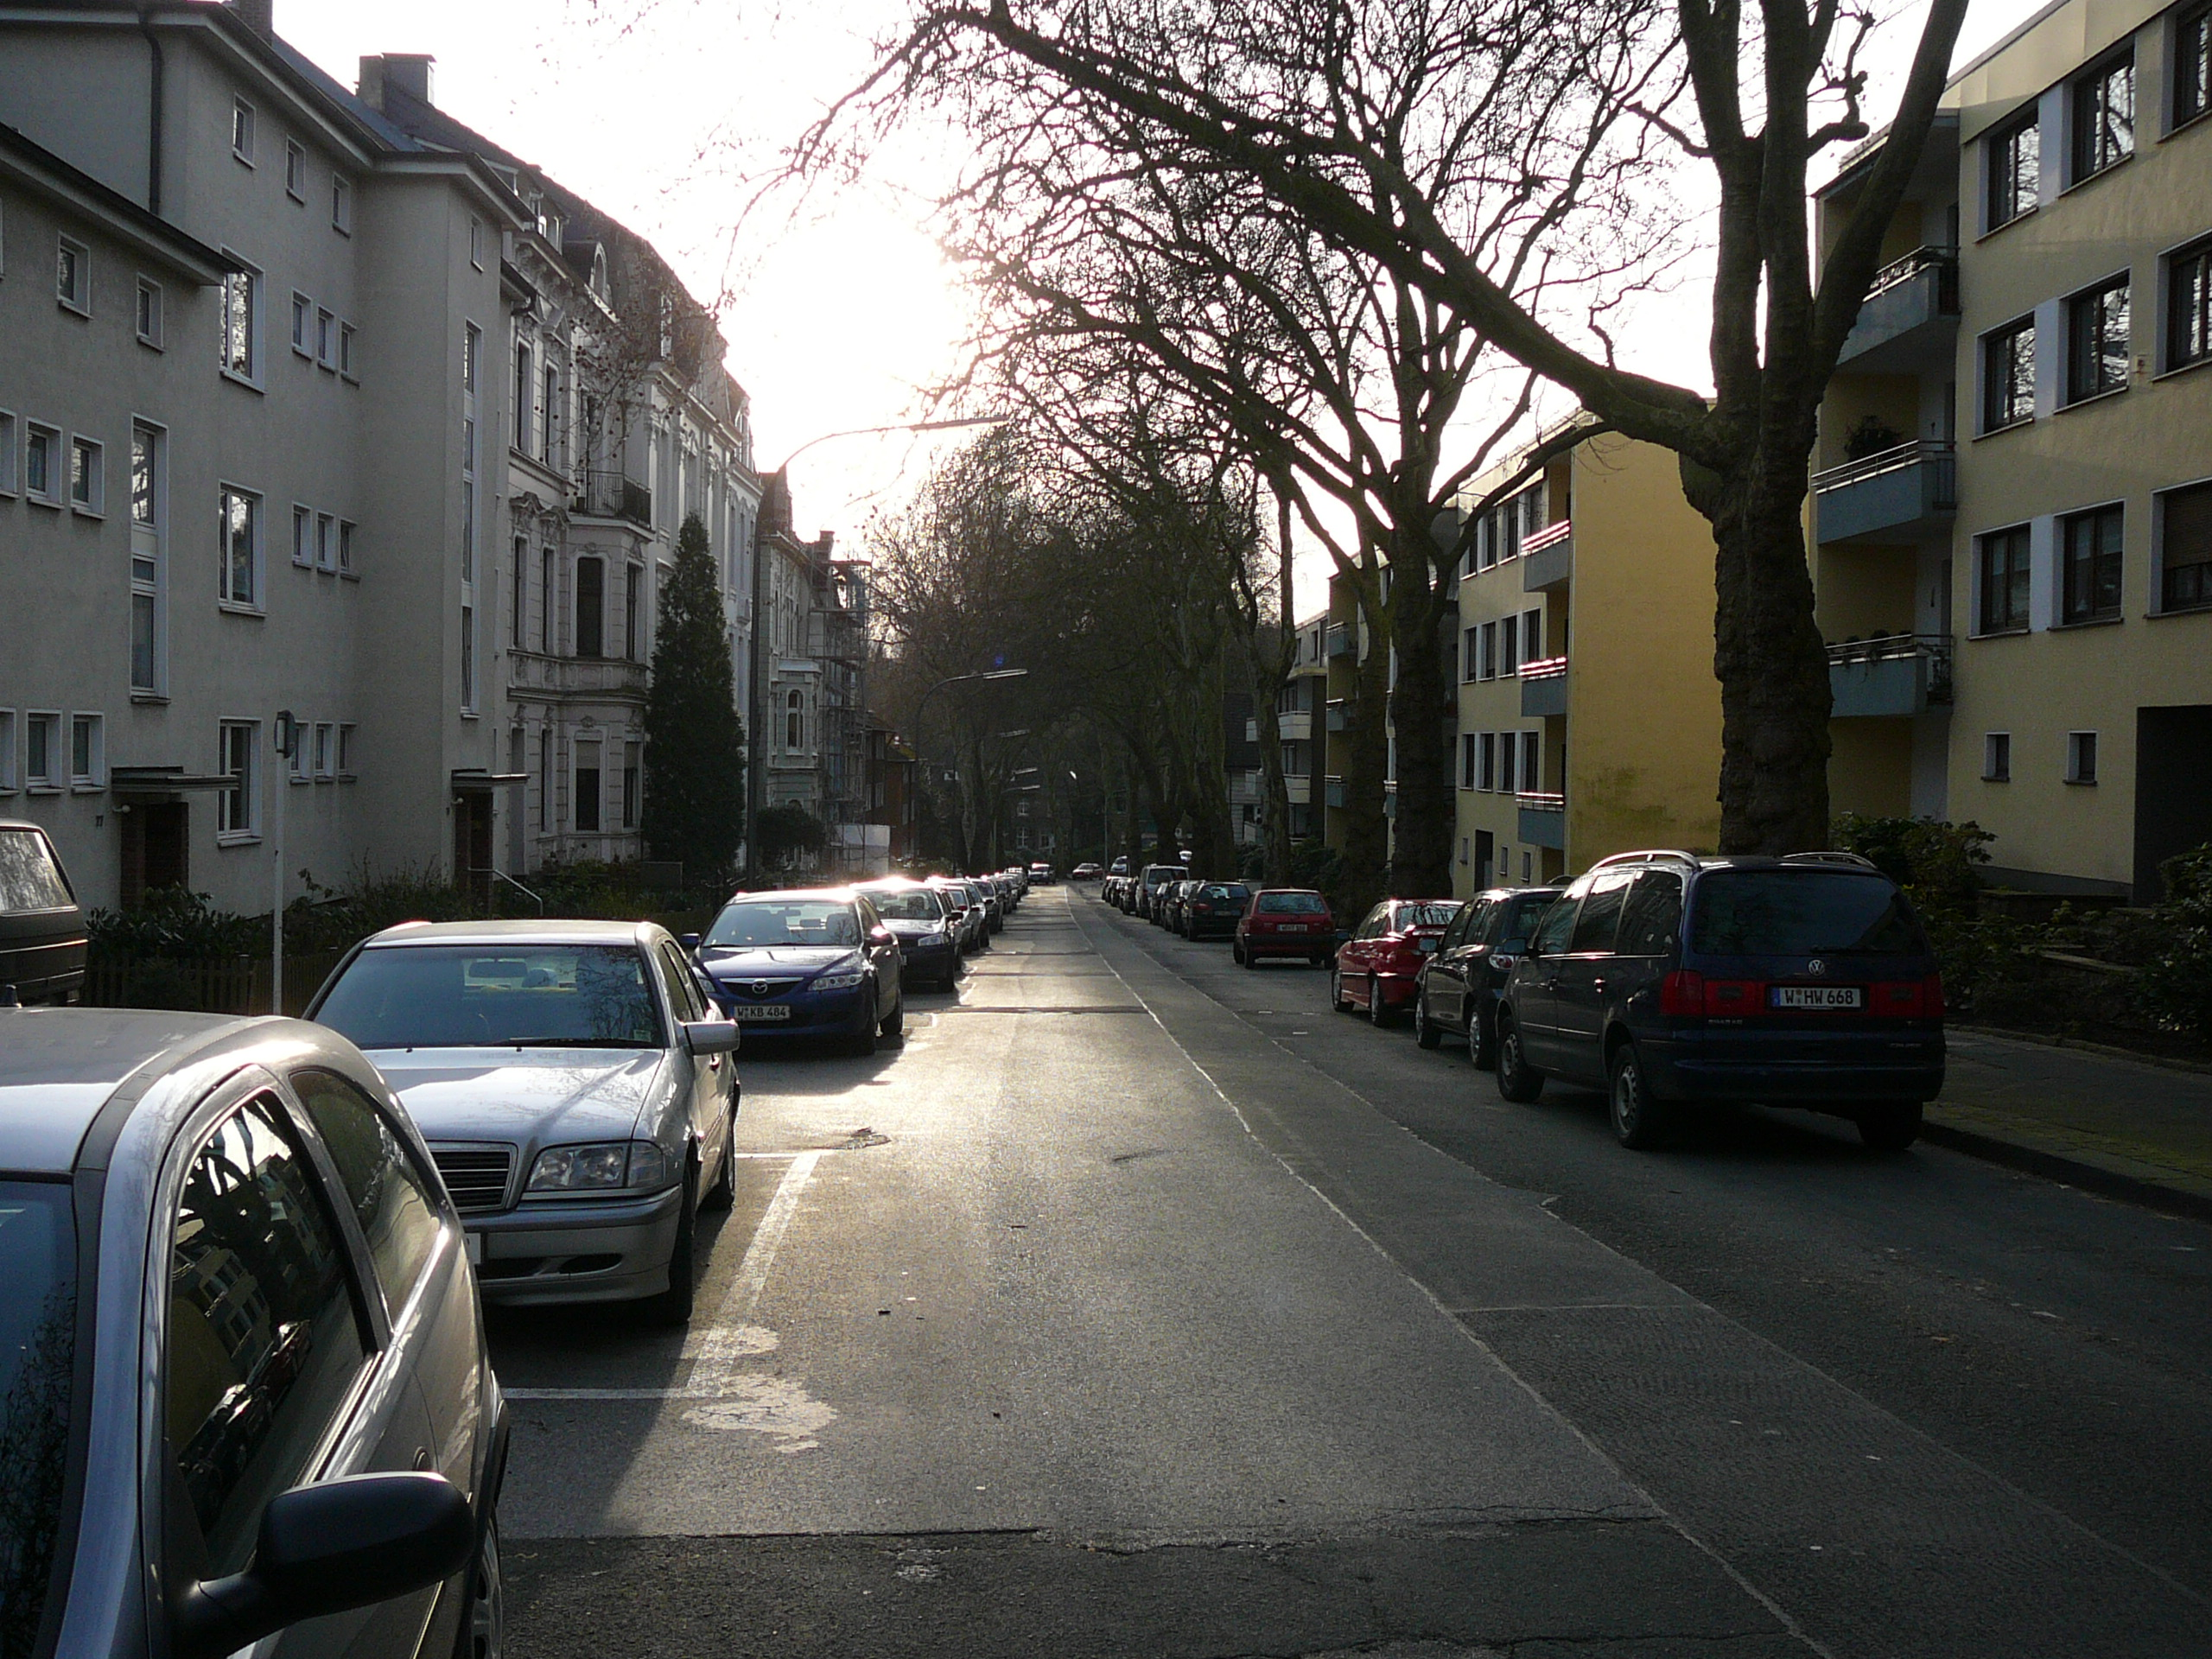 FileWuppertal Nüller Str 0006jpg  Wikimedia Commo